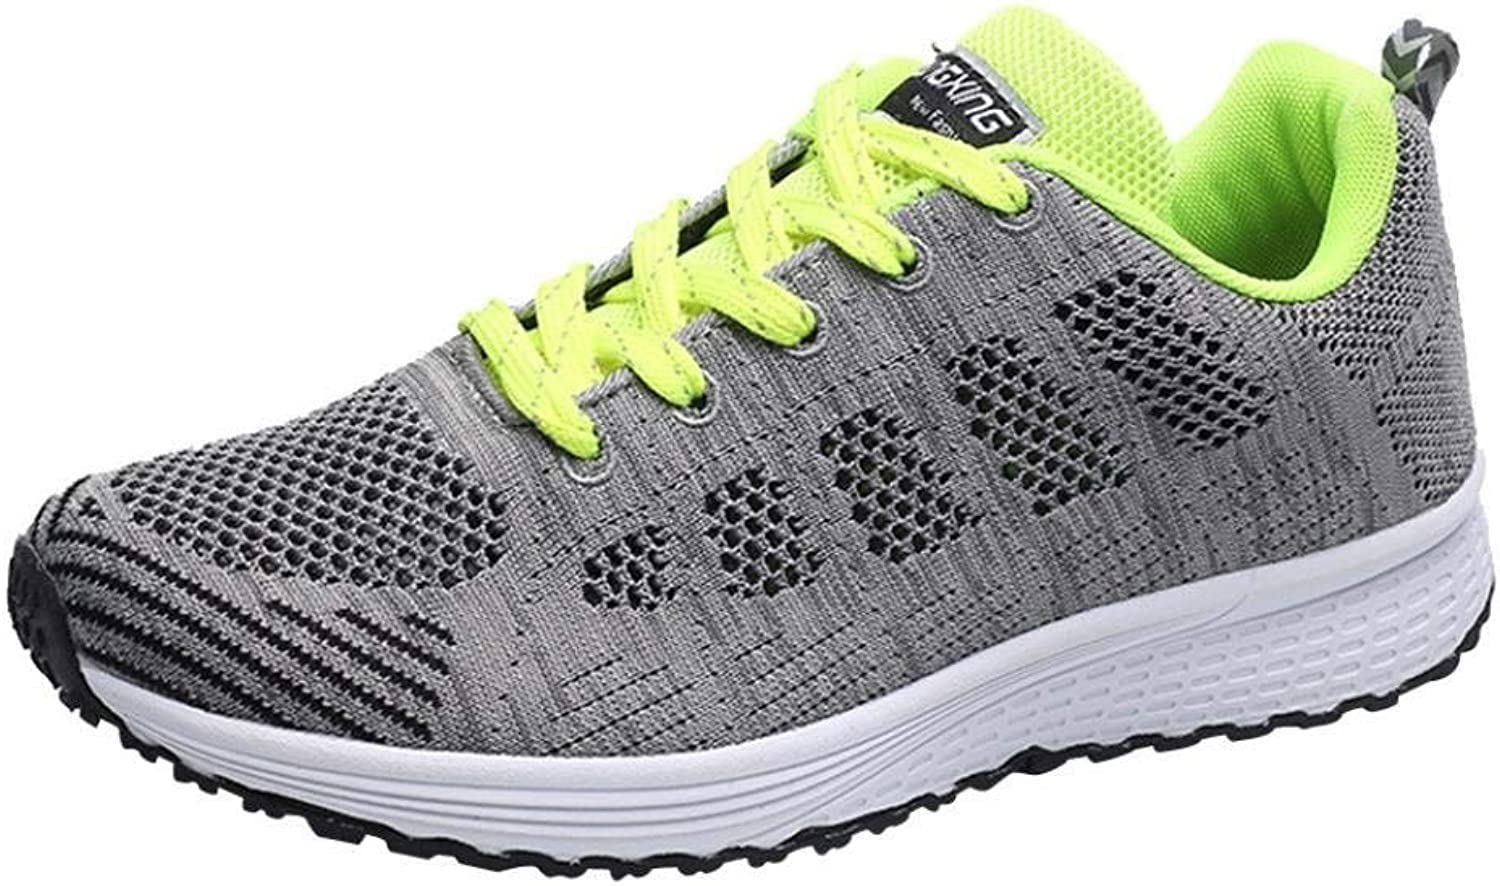 Qiusa Running shoes for Men, Sneakers Trainers Lace-up Flats Flip Flops Thongs Espadrilles Wedge Sports Gym Outdoor Walking Dance Air Workout, Mesh Cross Straps Couple shoes